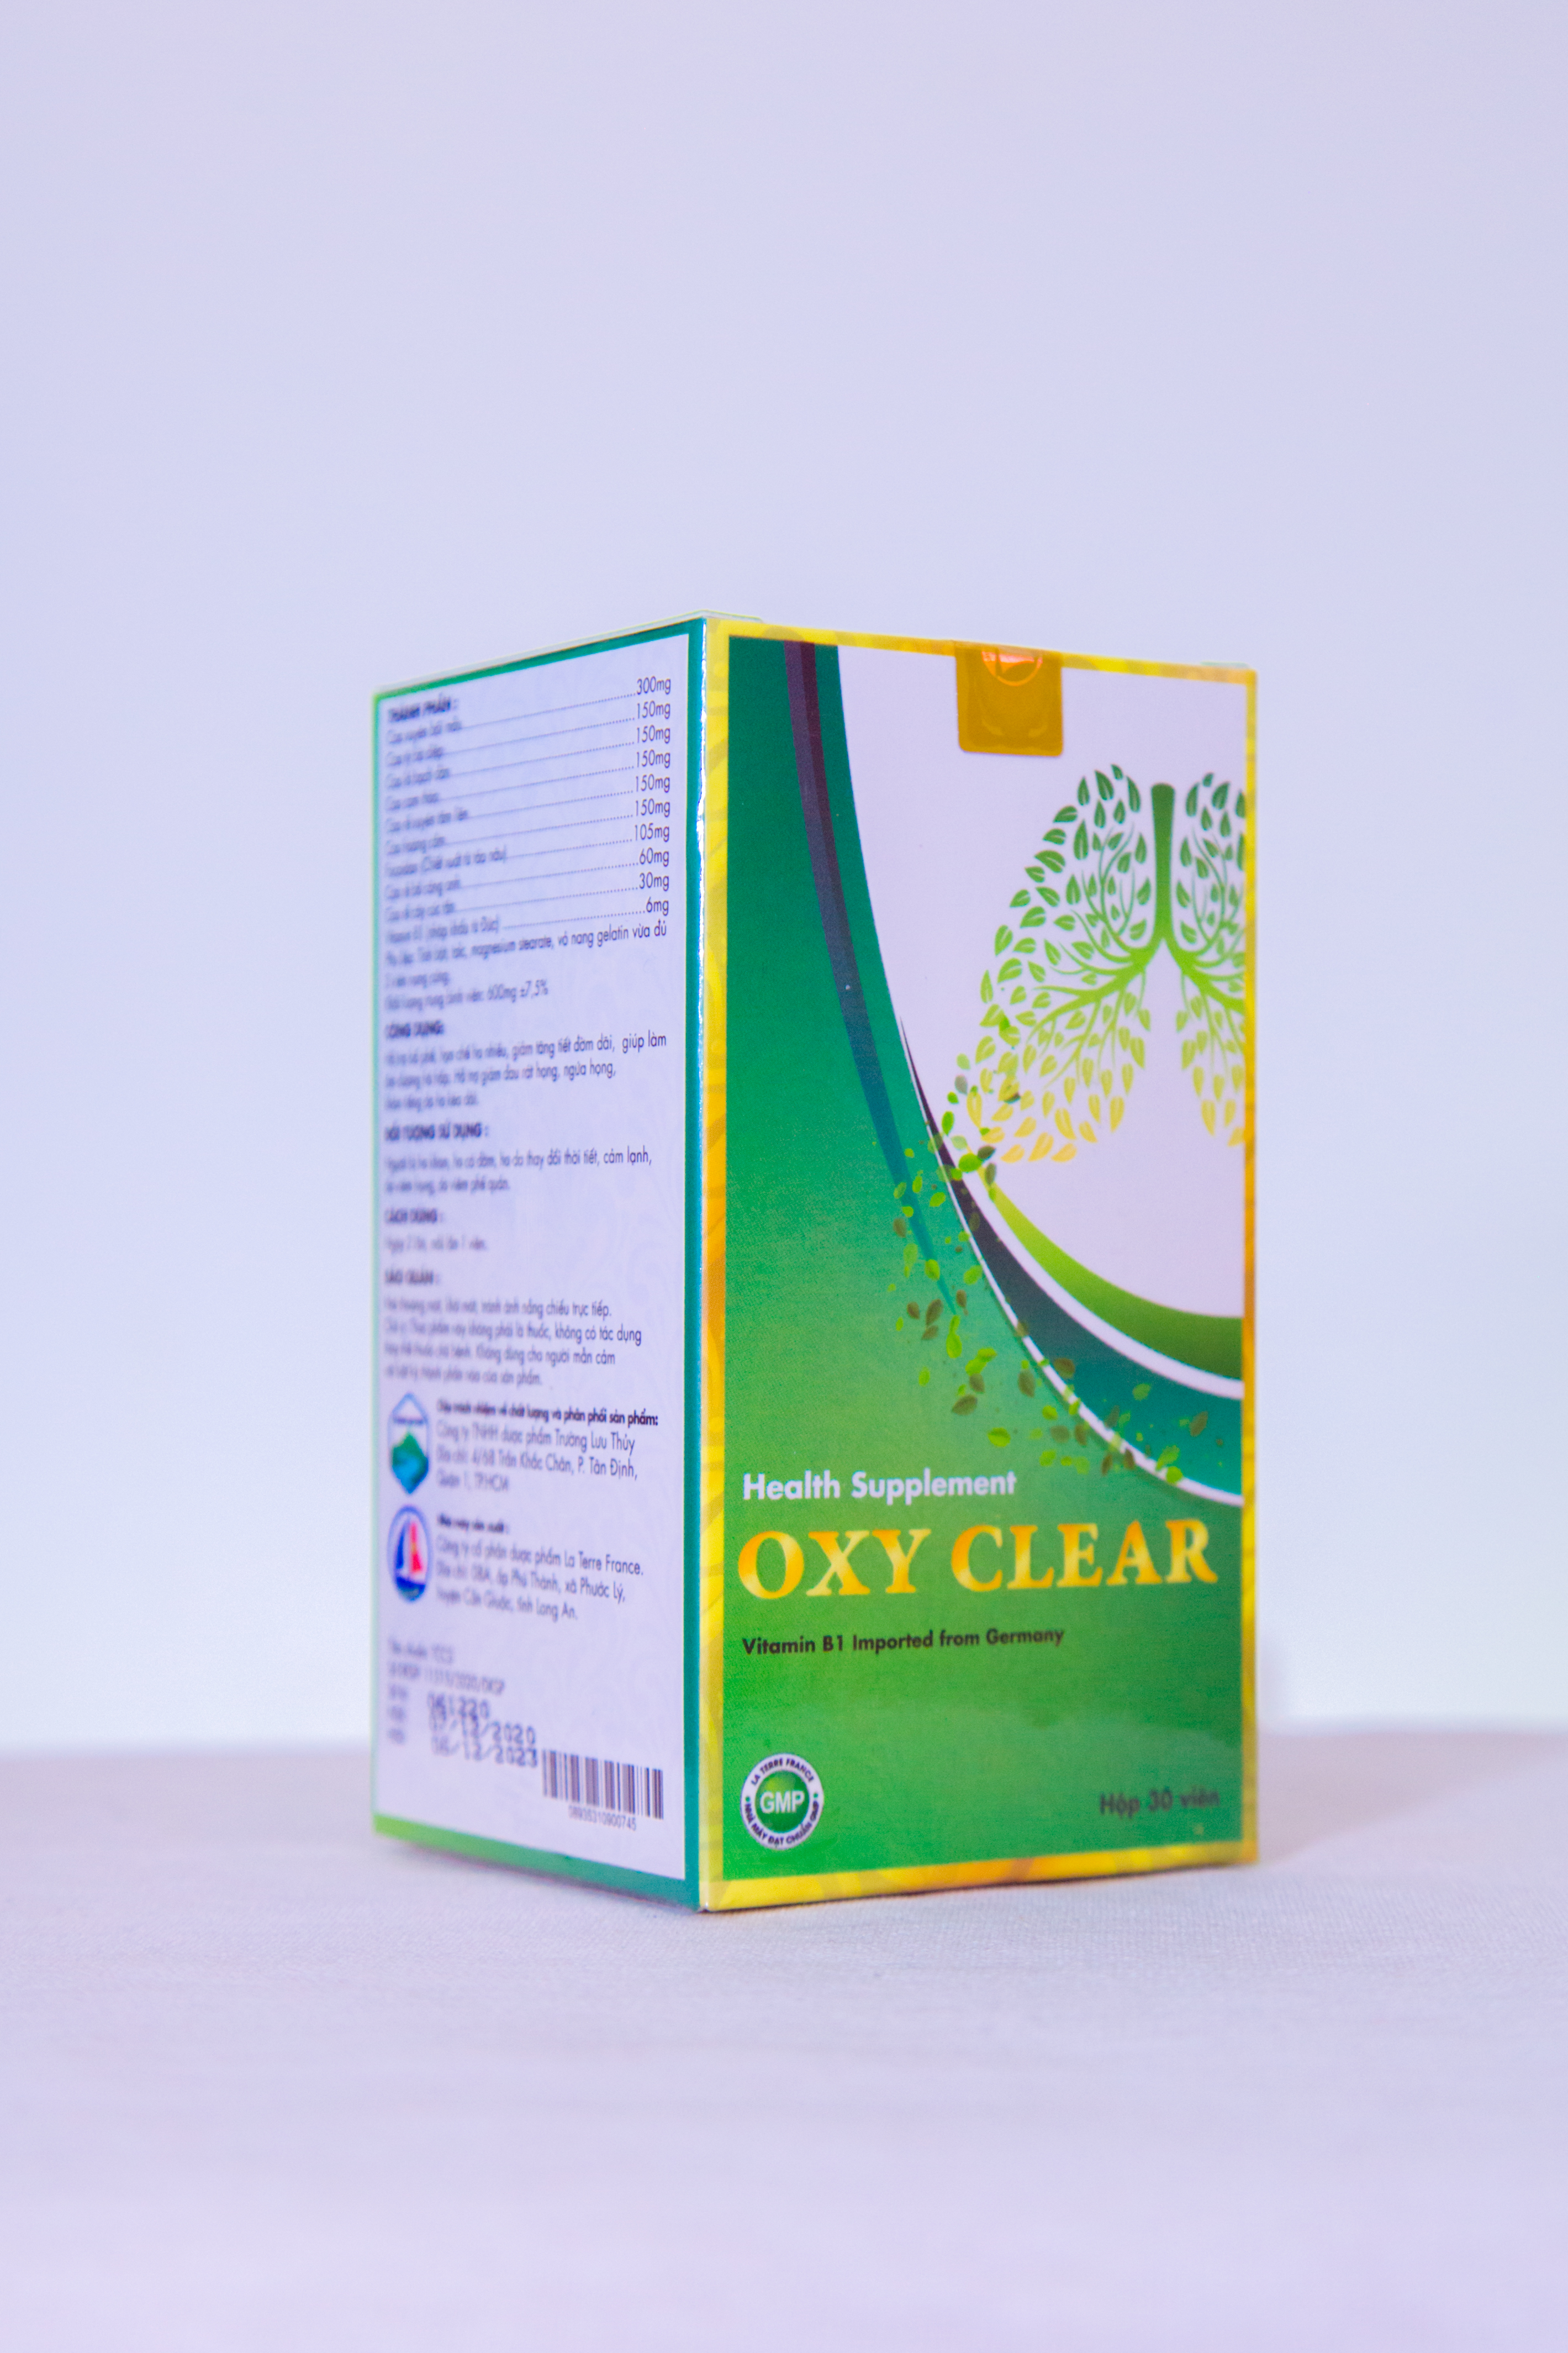 Oxy Clear